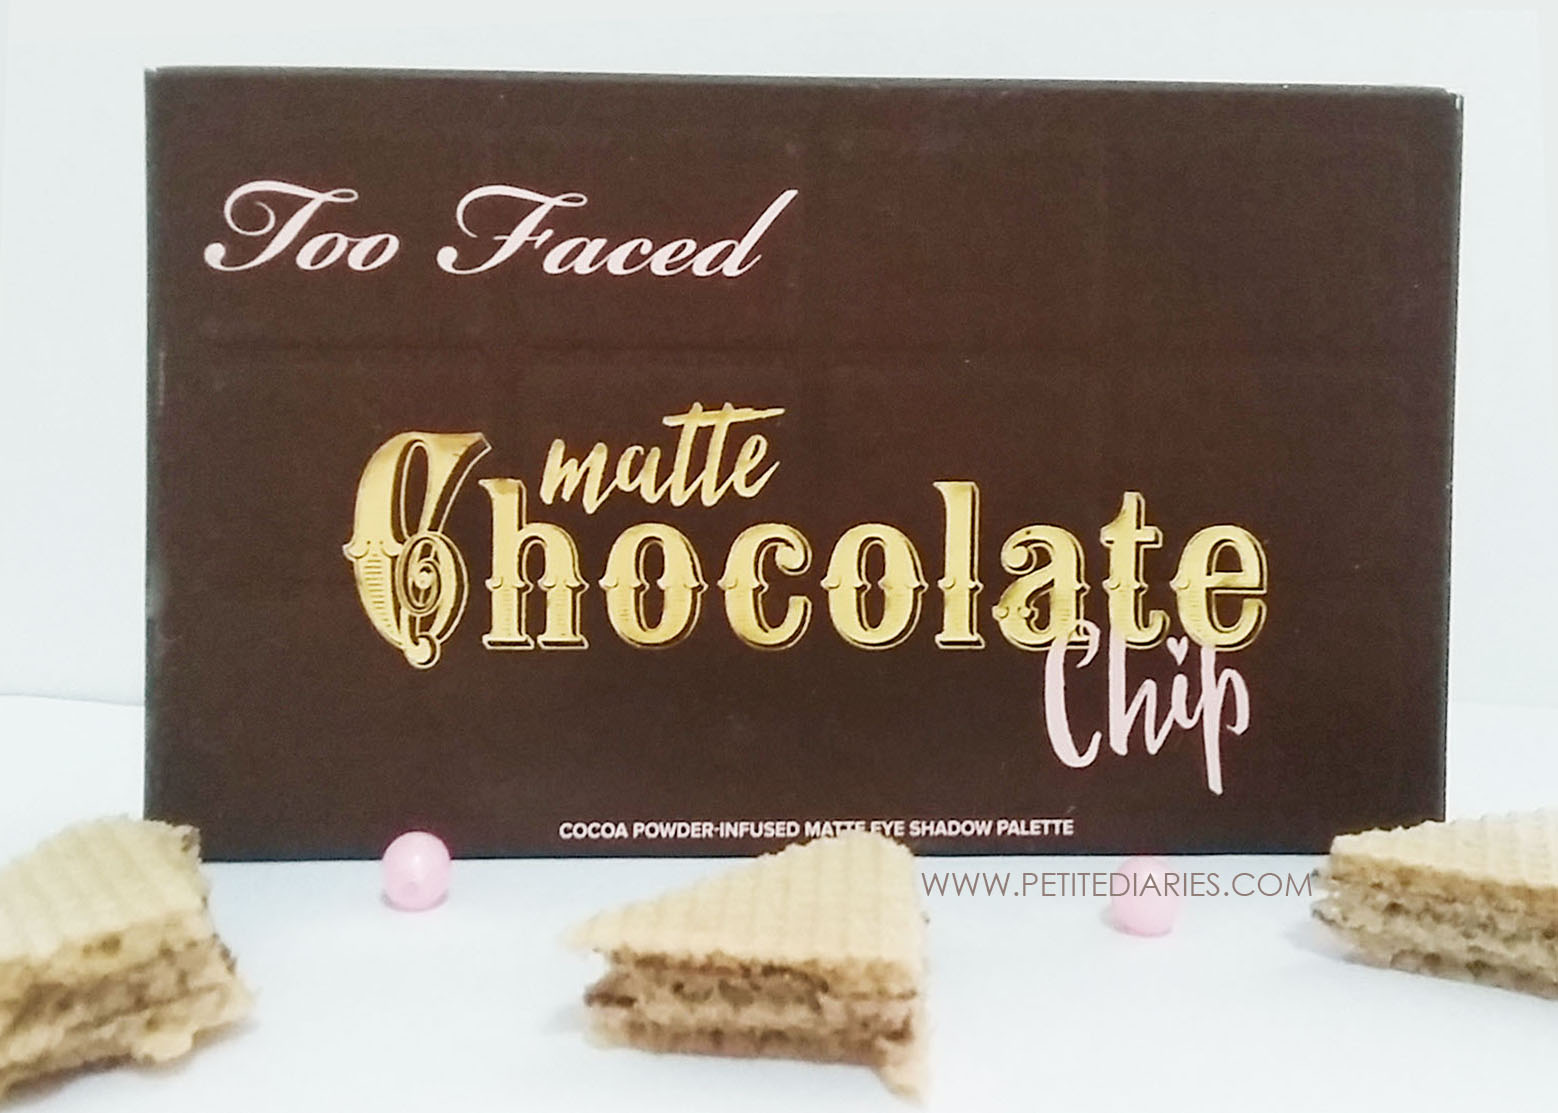 toofaced matte chocolate chip eyeshadow